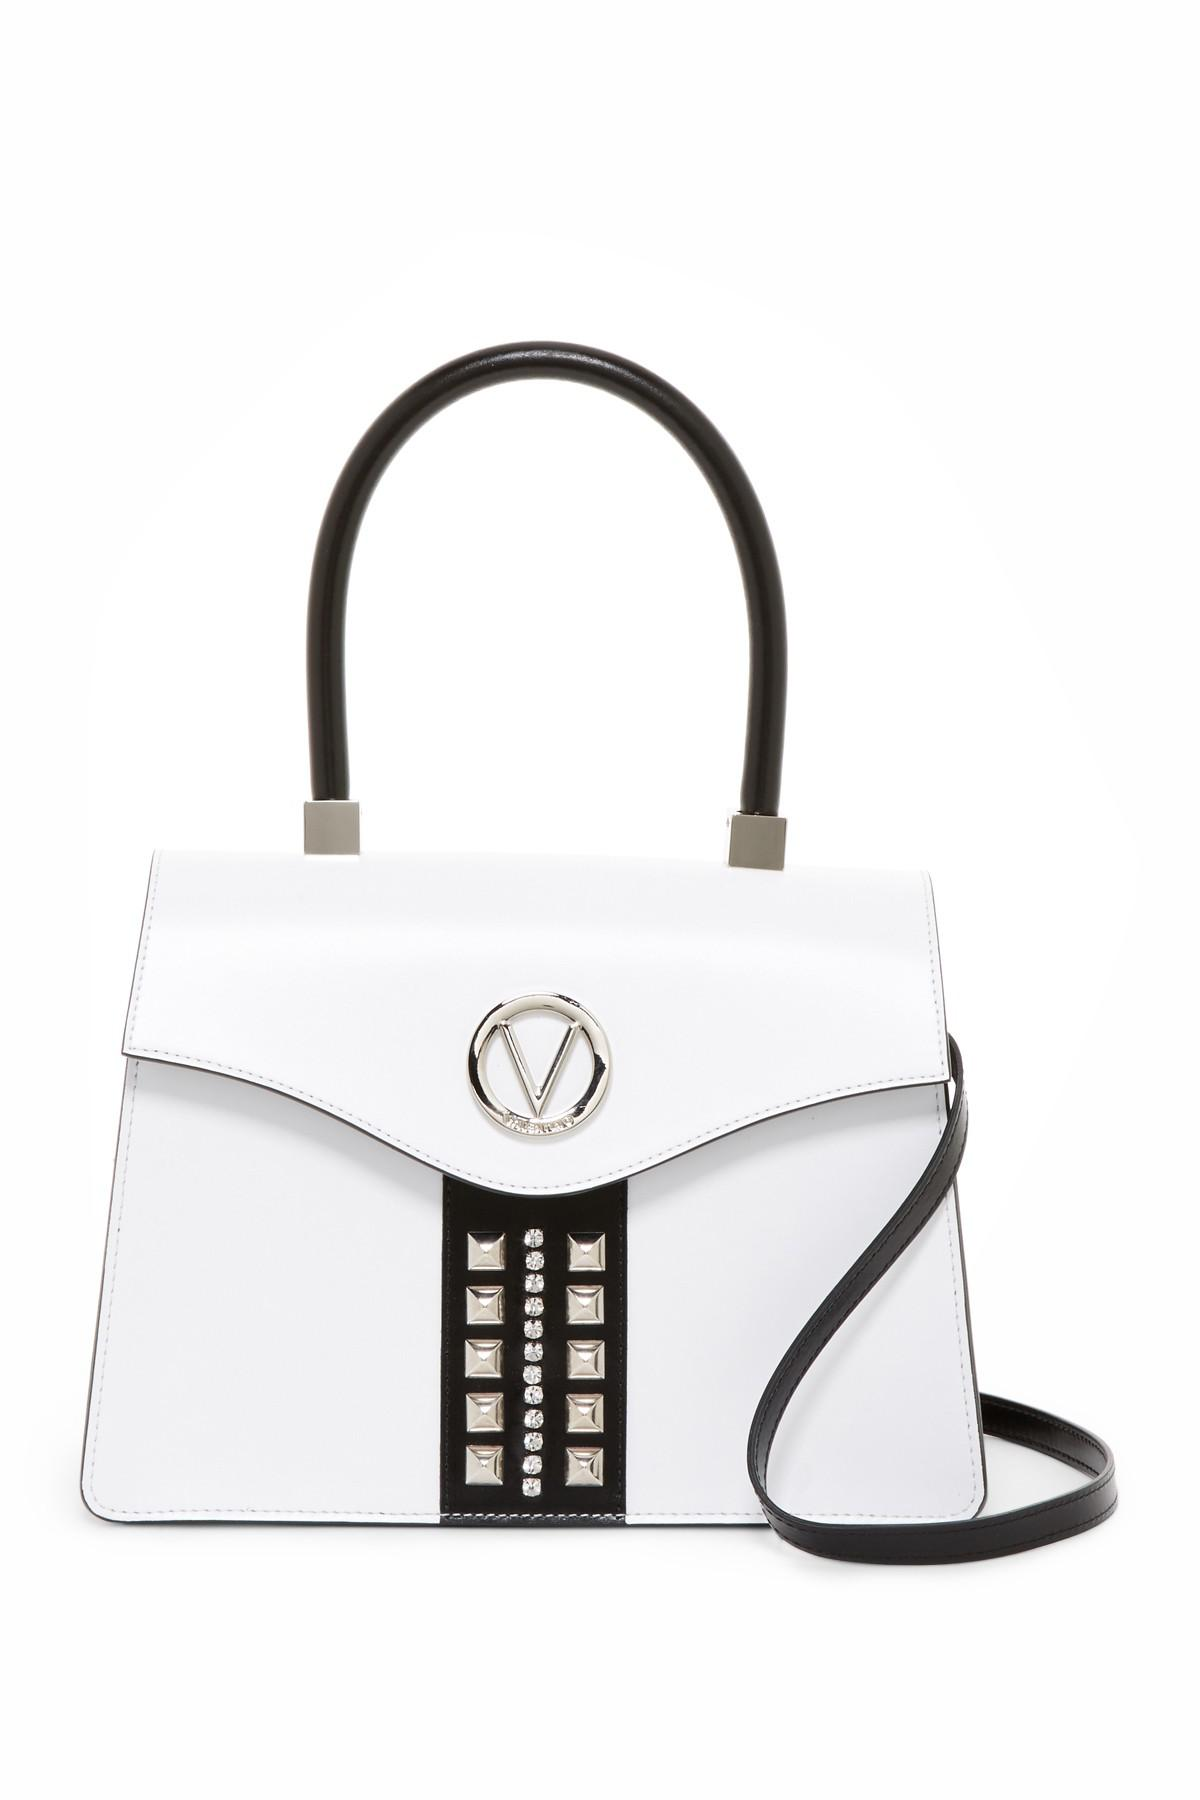 491a9a29b0c Gallery. Previously sold at: Nordstrom Rack · Women's Black Satchels ...